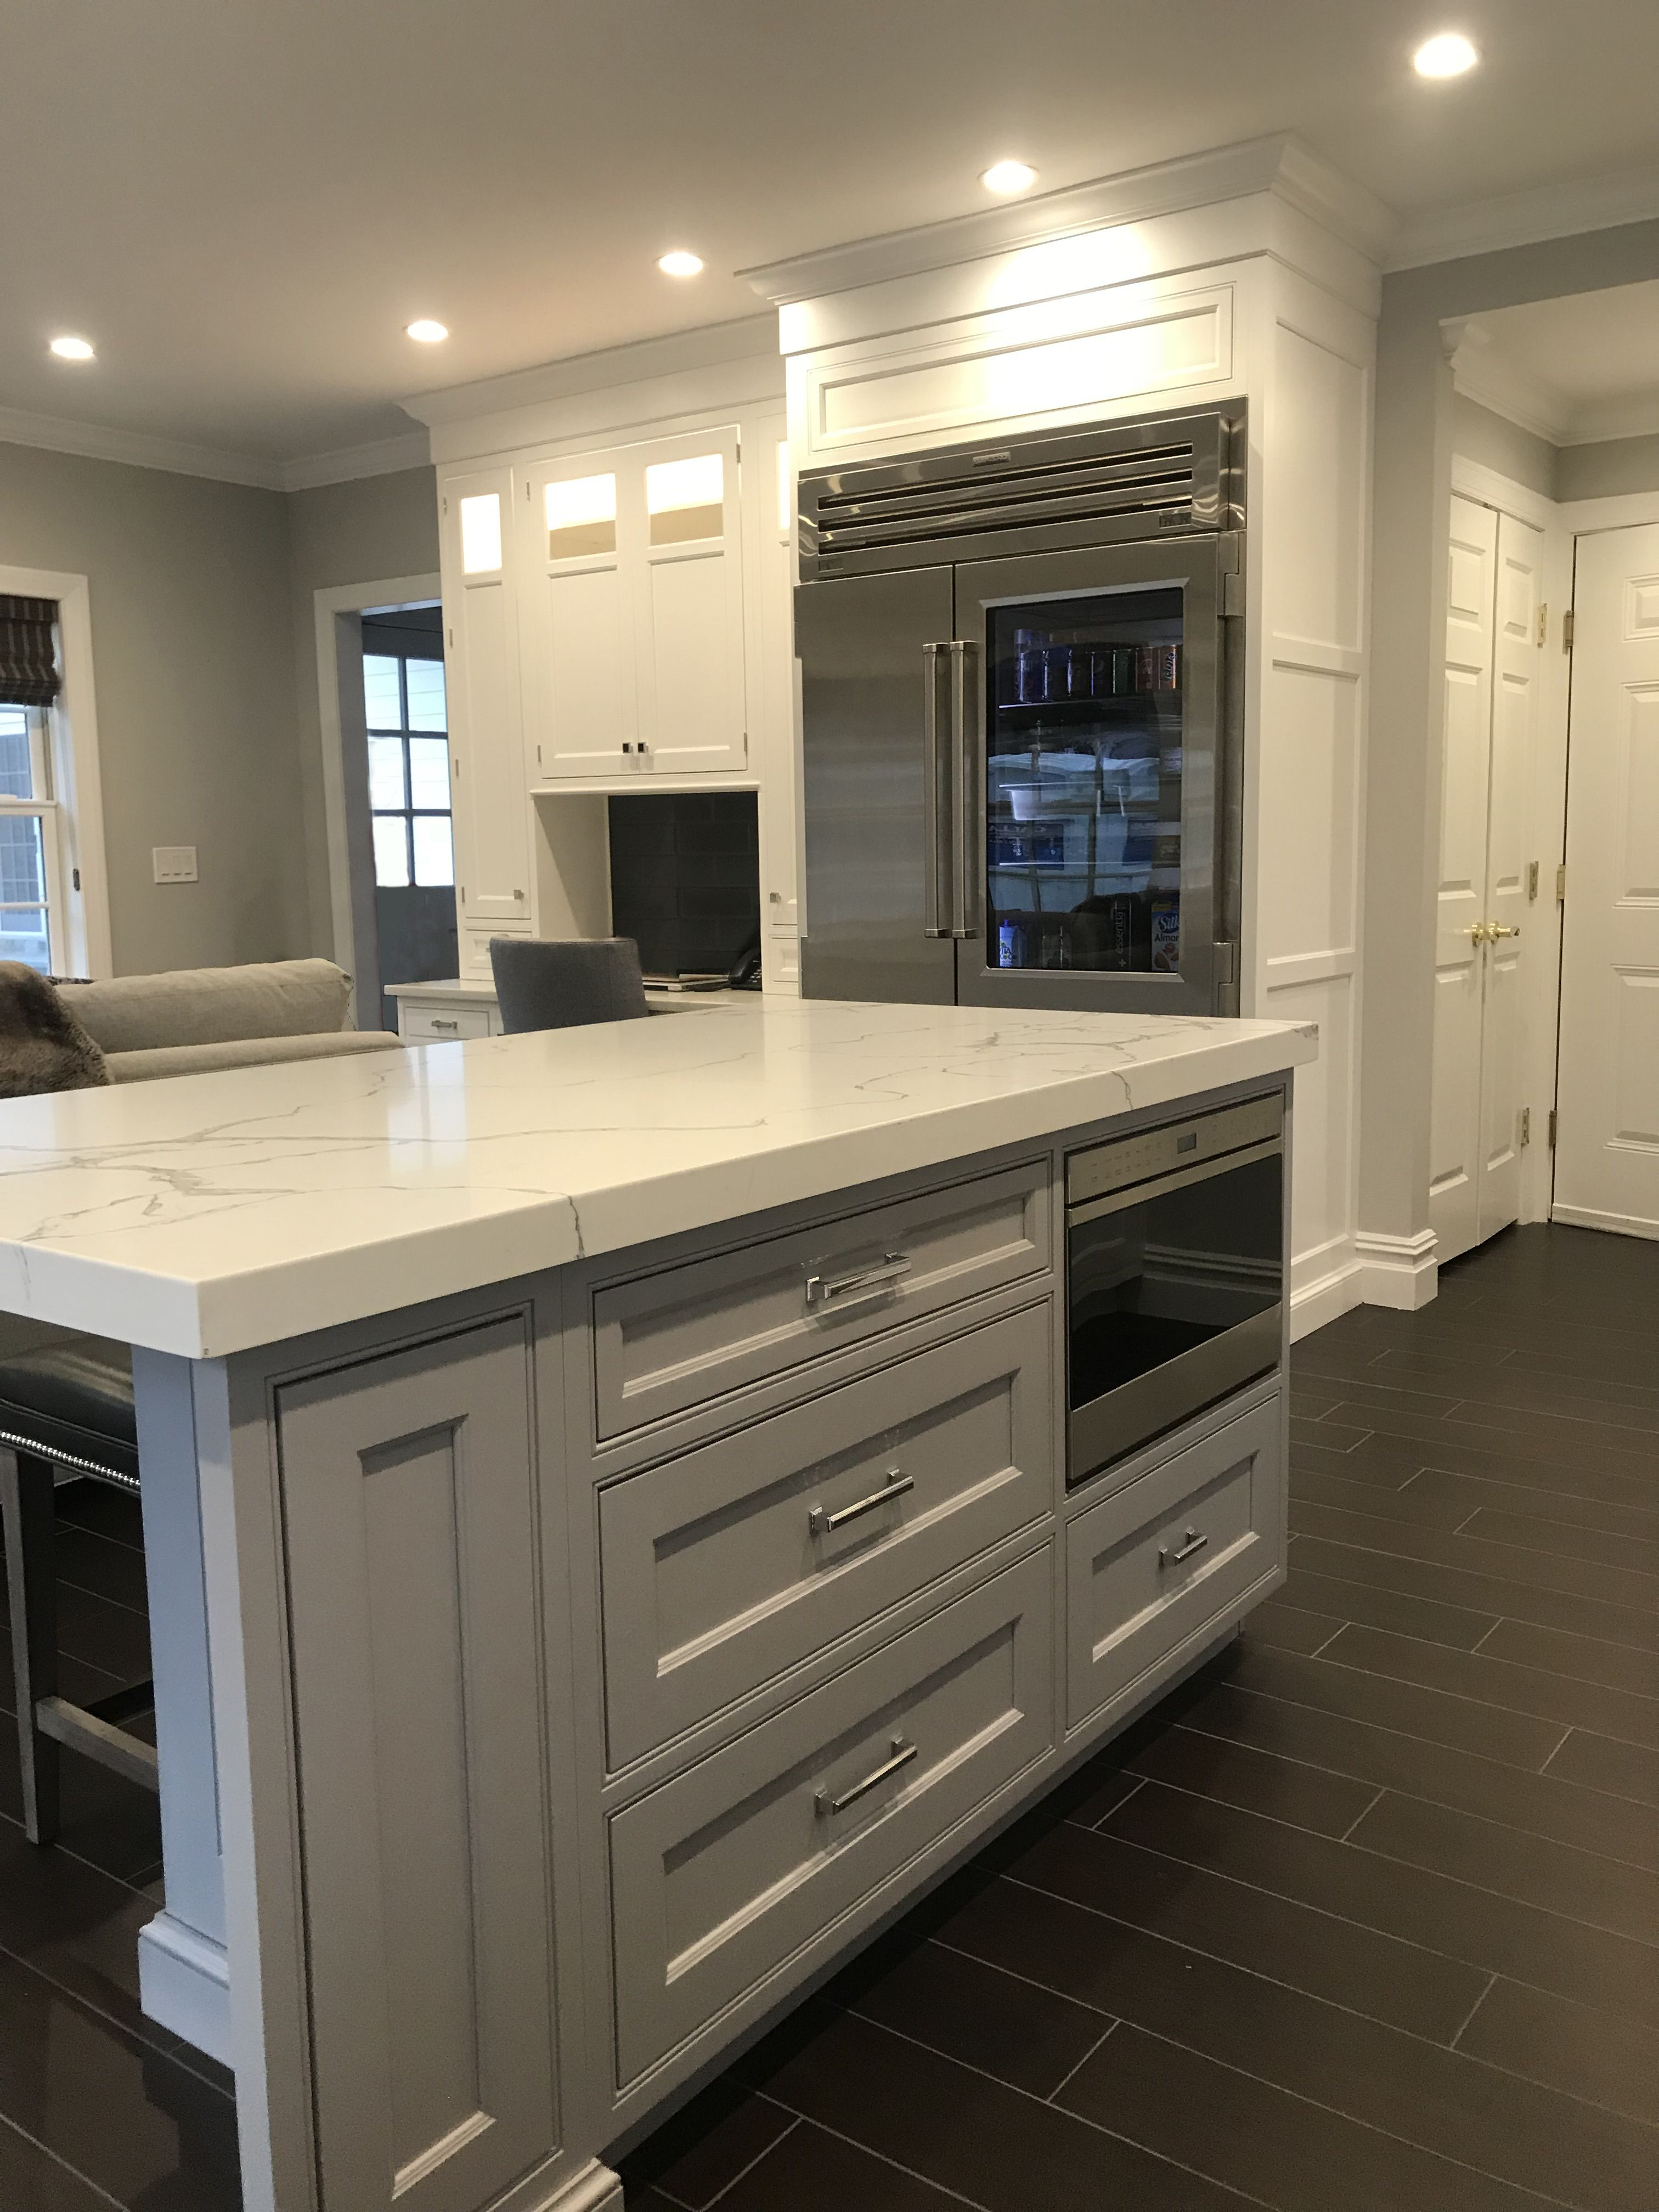 Ruttcabinetry In Warm Grey Tone Enhances White Perimeter Cabinetry